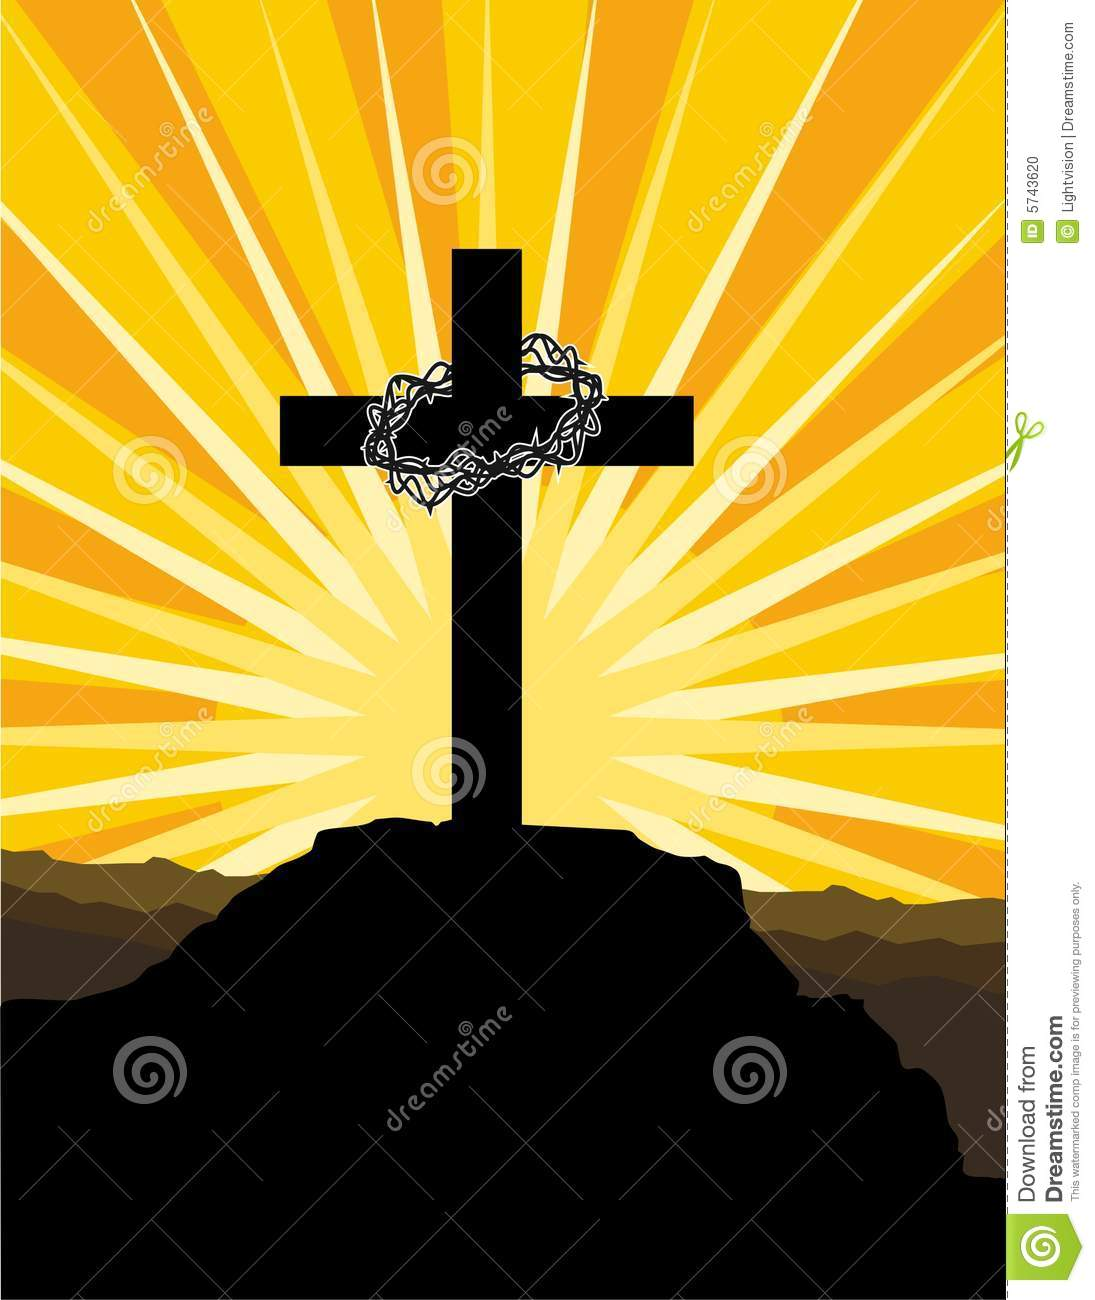 cross and crown of thorns stock photo image 5743620 crown of thorns vector image Gold Crown of Thorns Vector